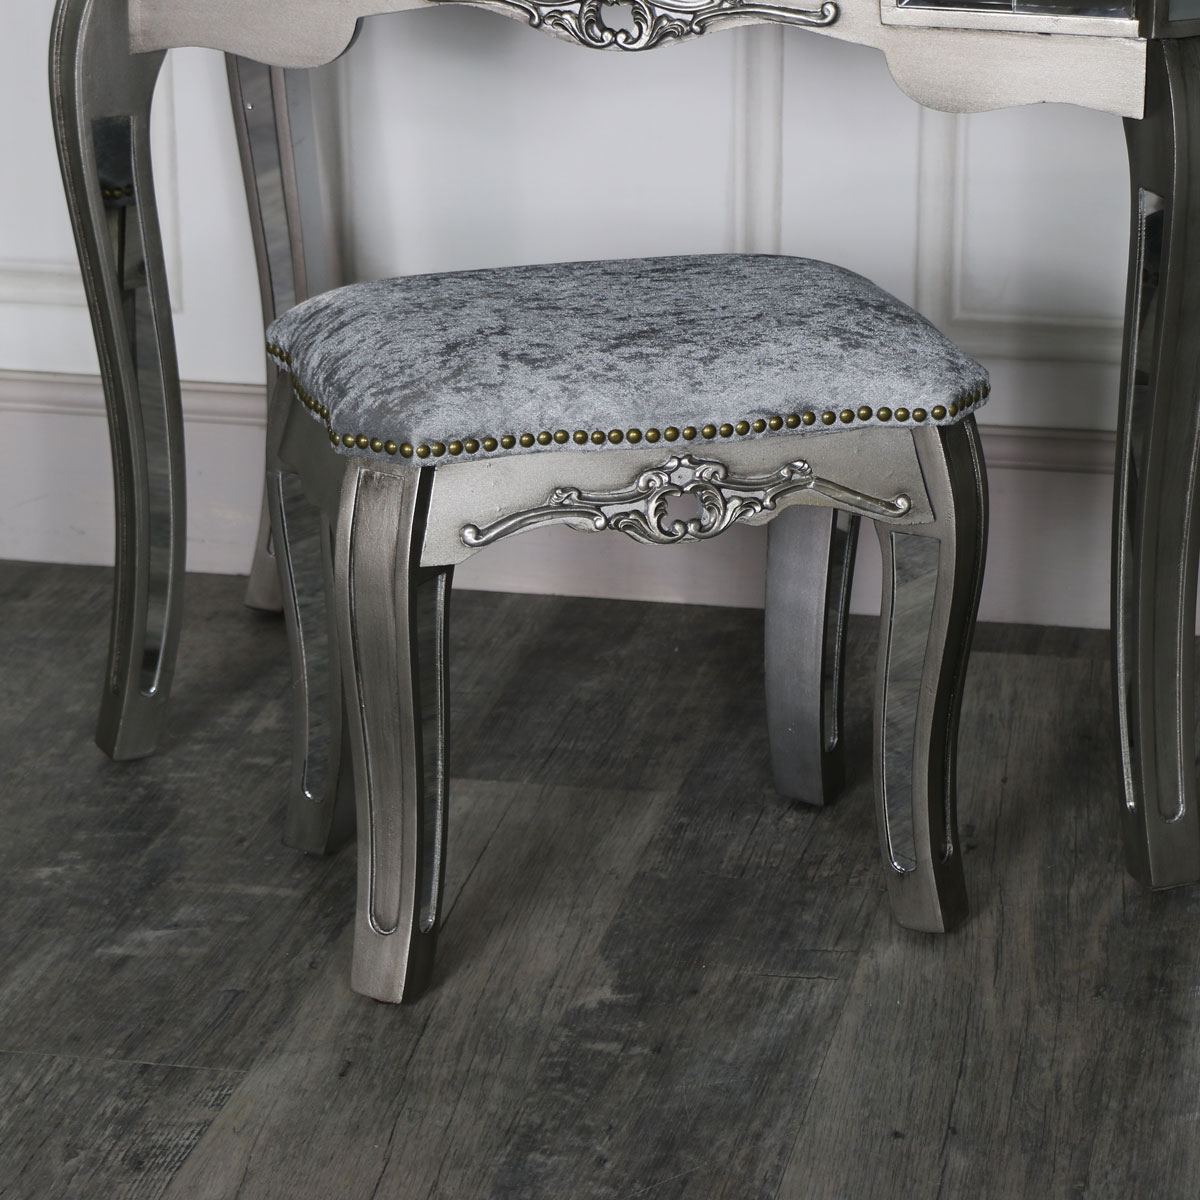 Mirrored Dressing Table Stool - Tiffany Range